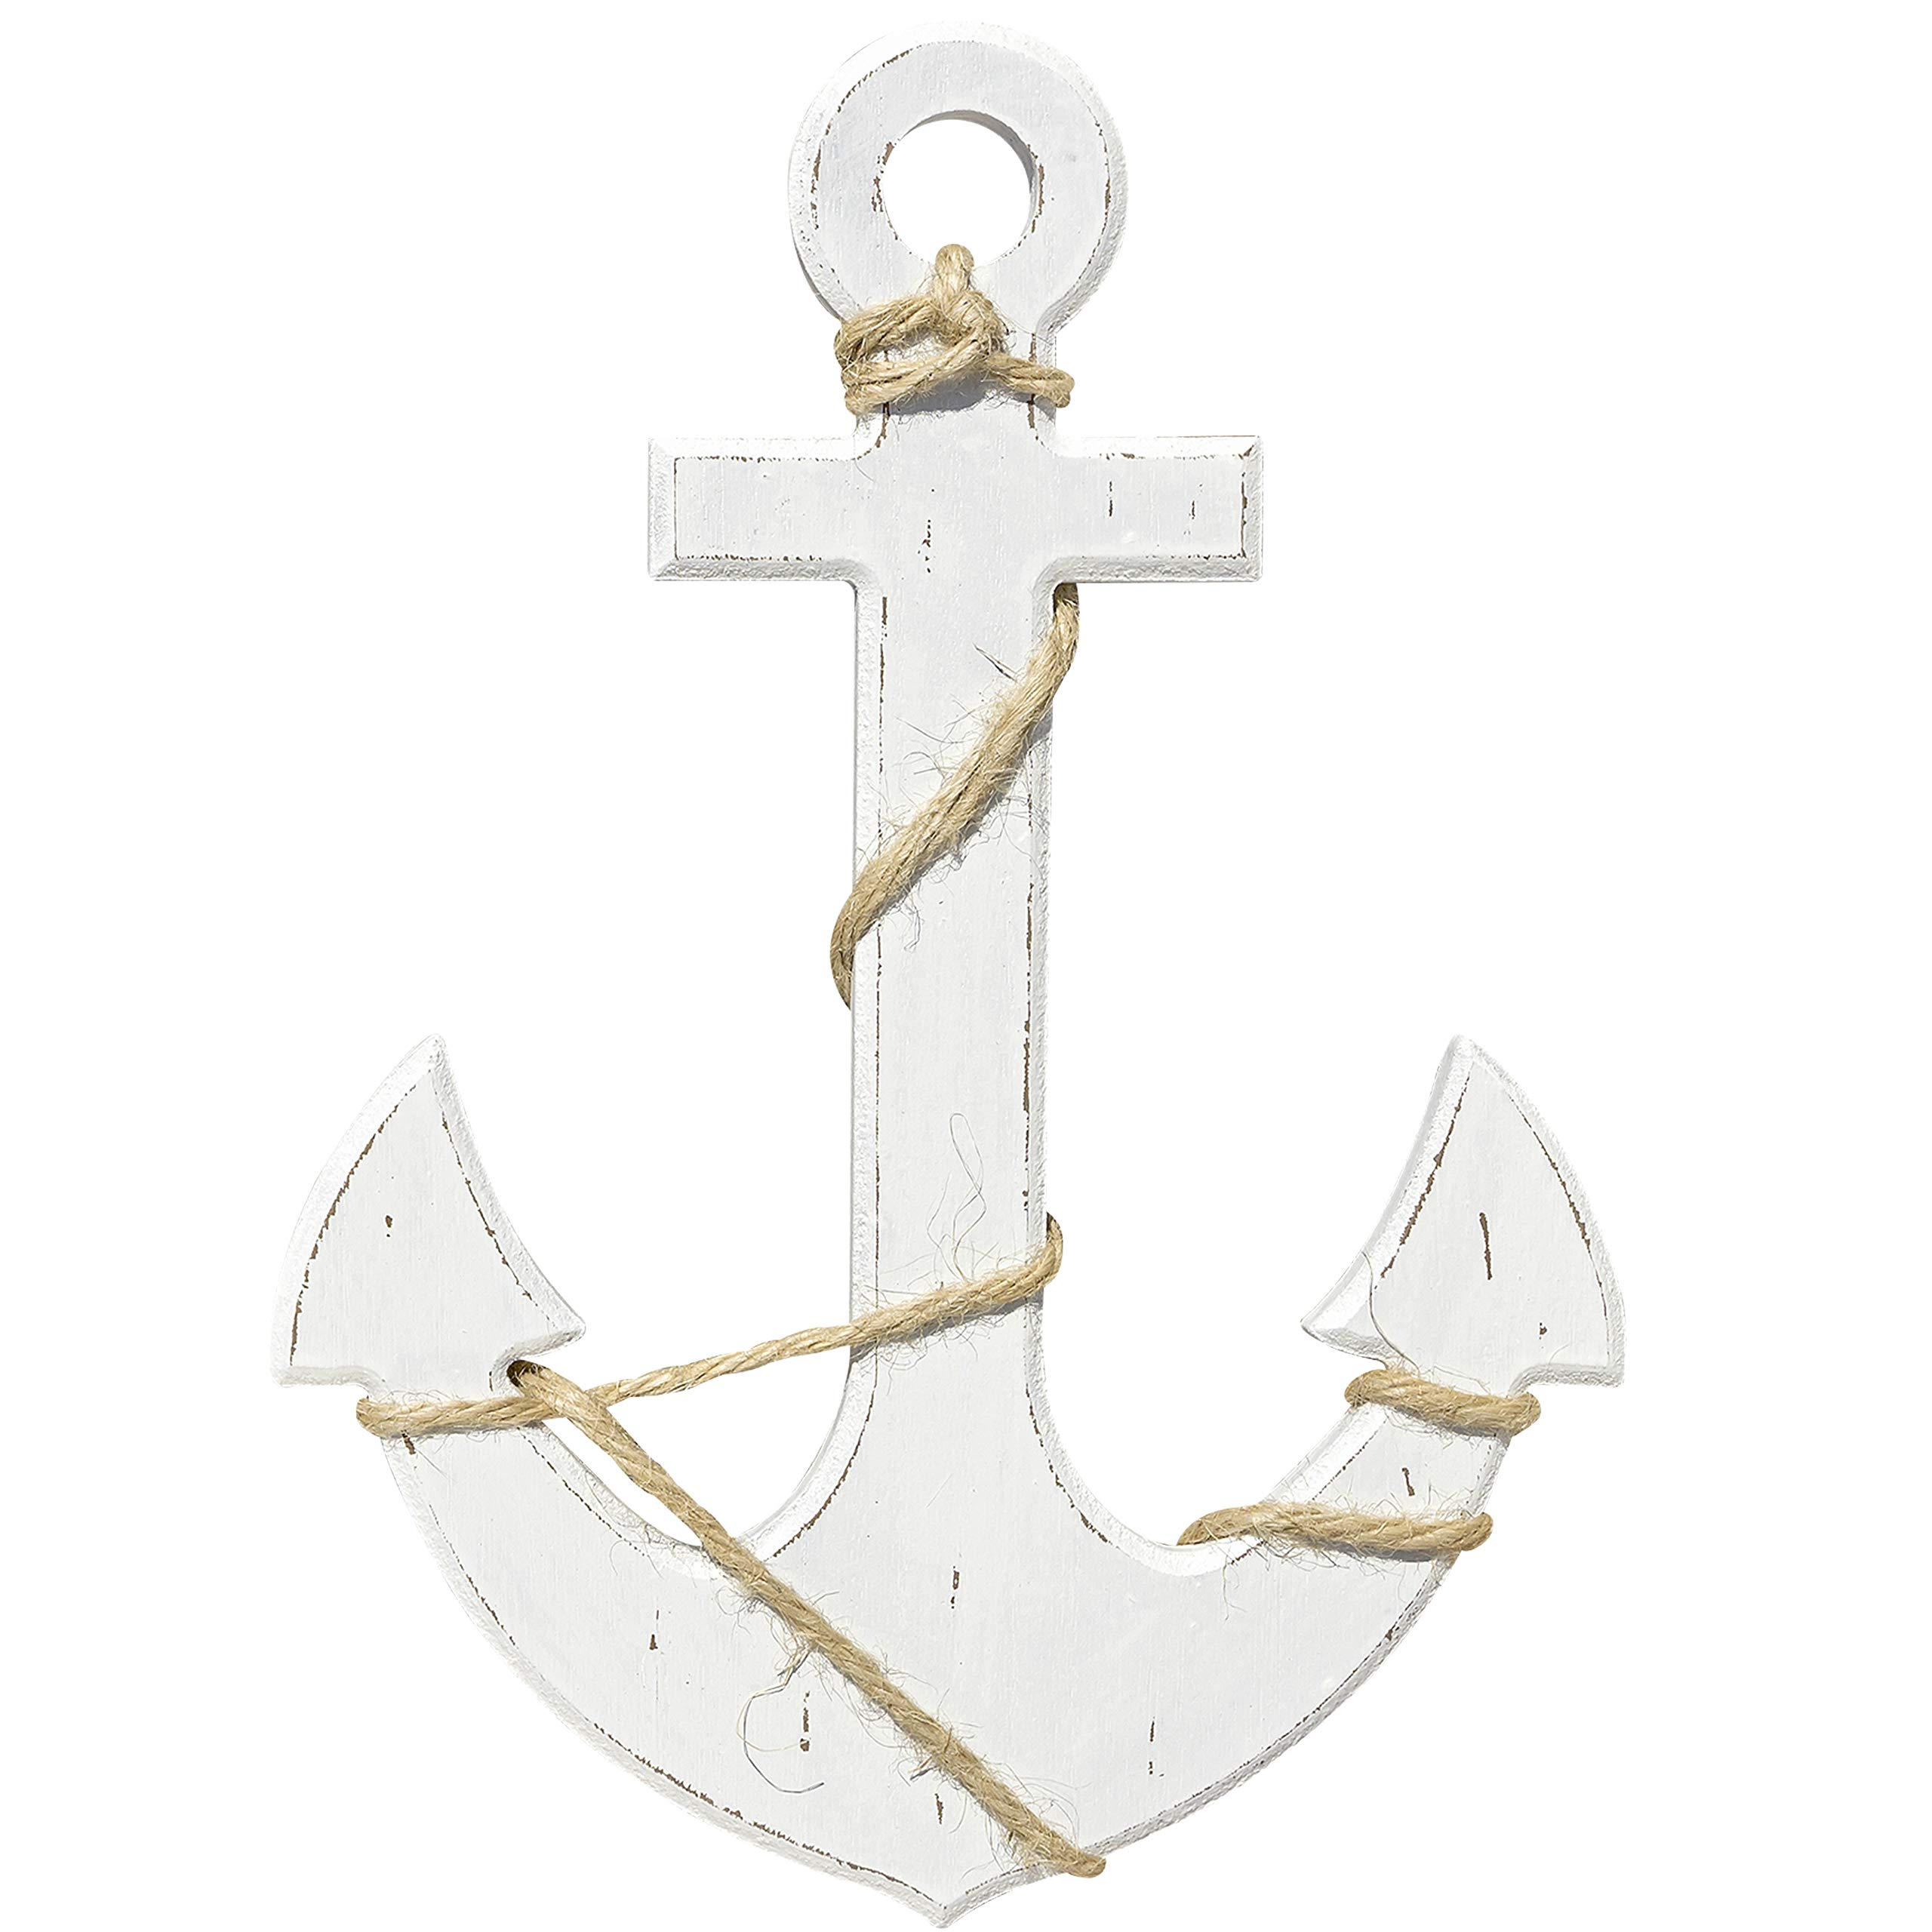 Whole House Worlds The Mariner's Anchor Wall Art, Nautical Painted Wood, Lightly Distressed With Twine Details, Rustic White, 11 3/4 Inches Tall, Cape Cod Style, By WHW by Whole House Worlds